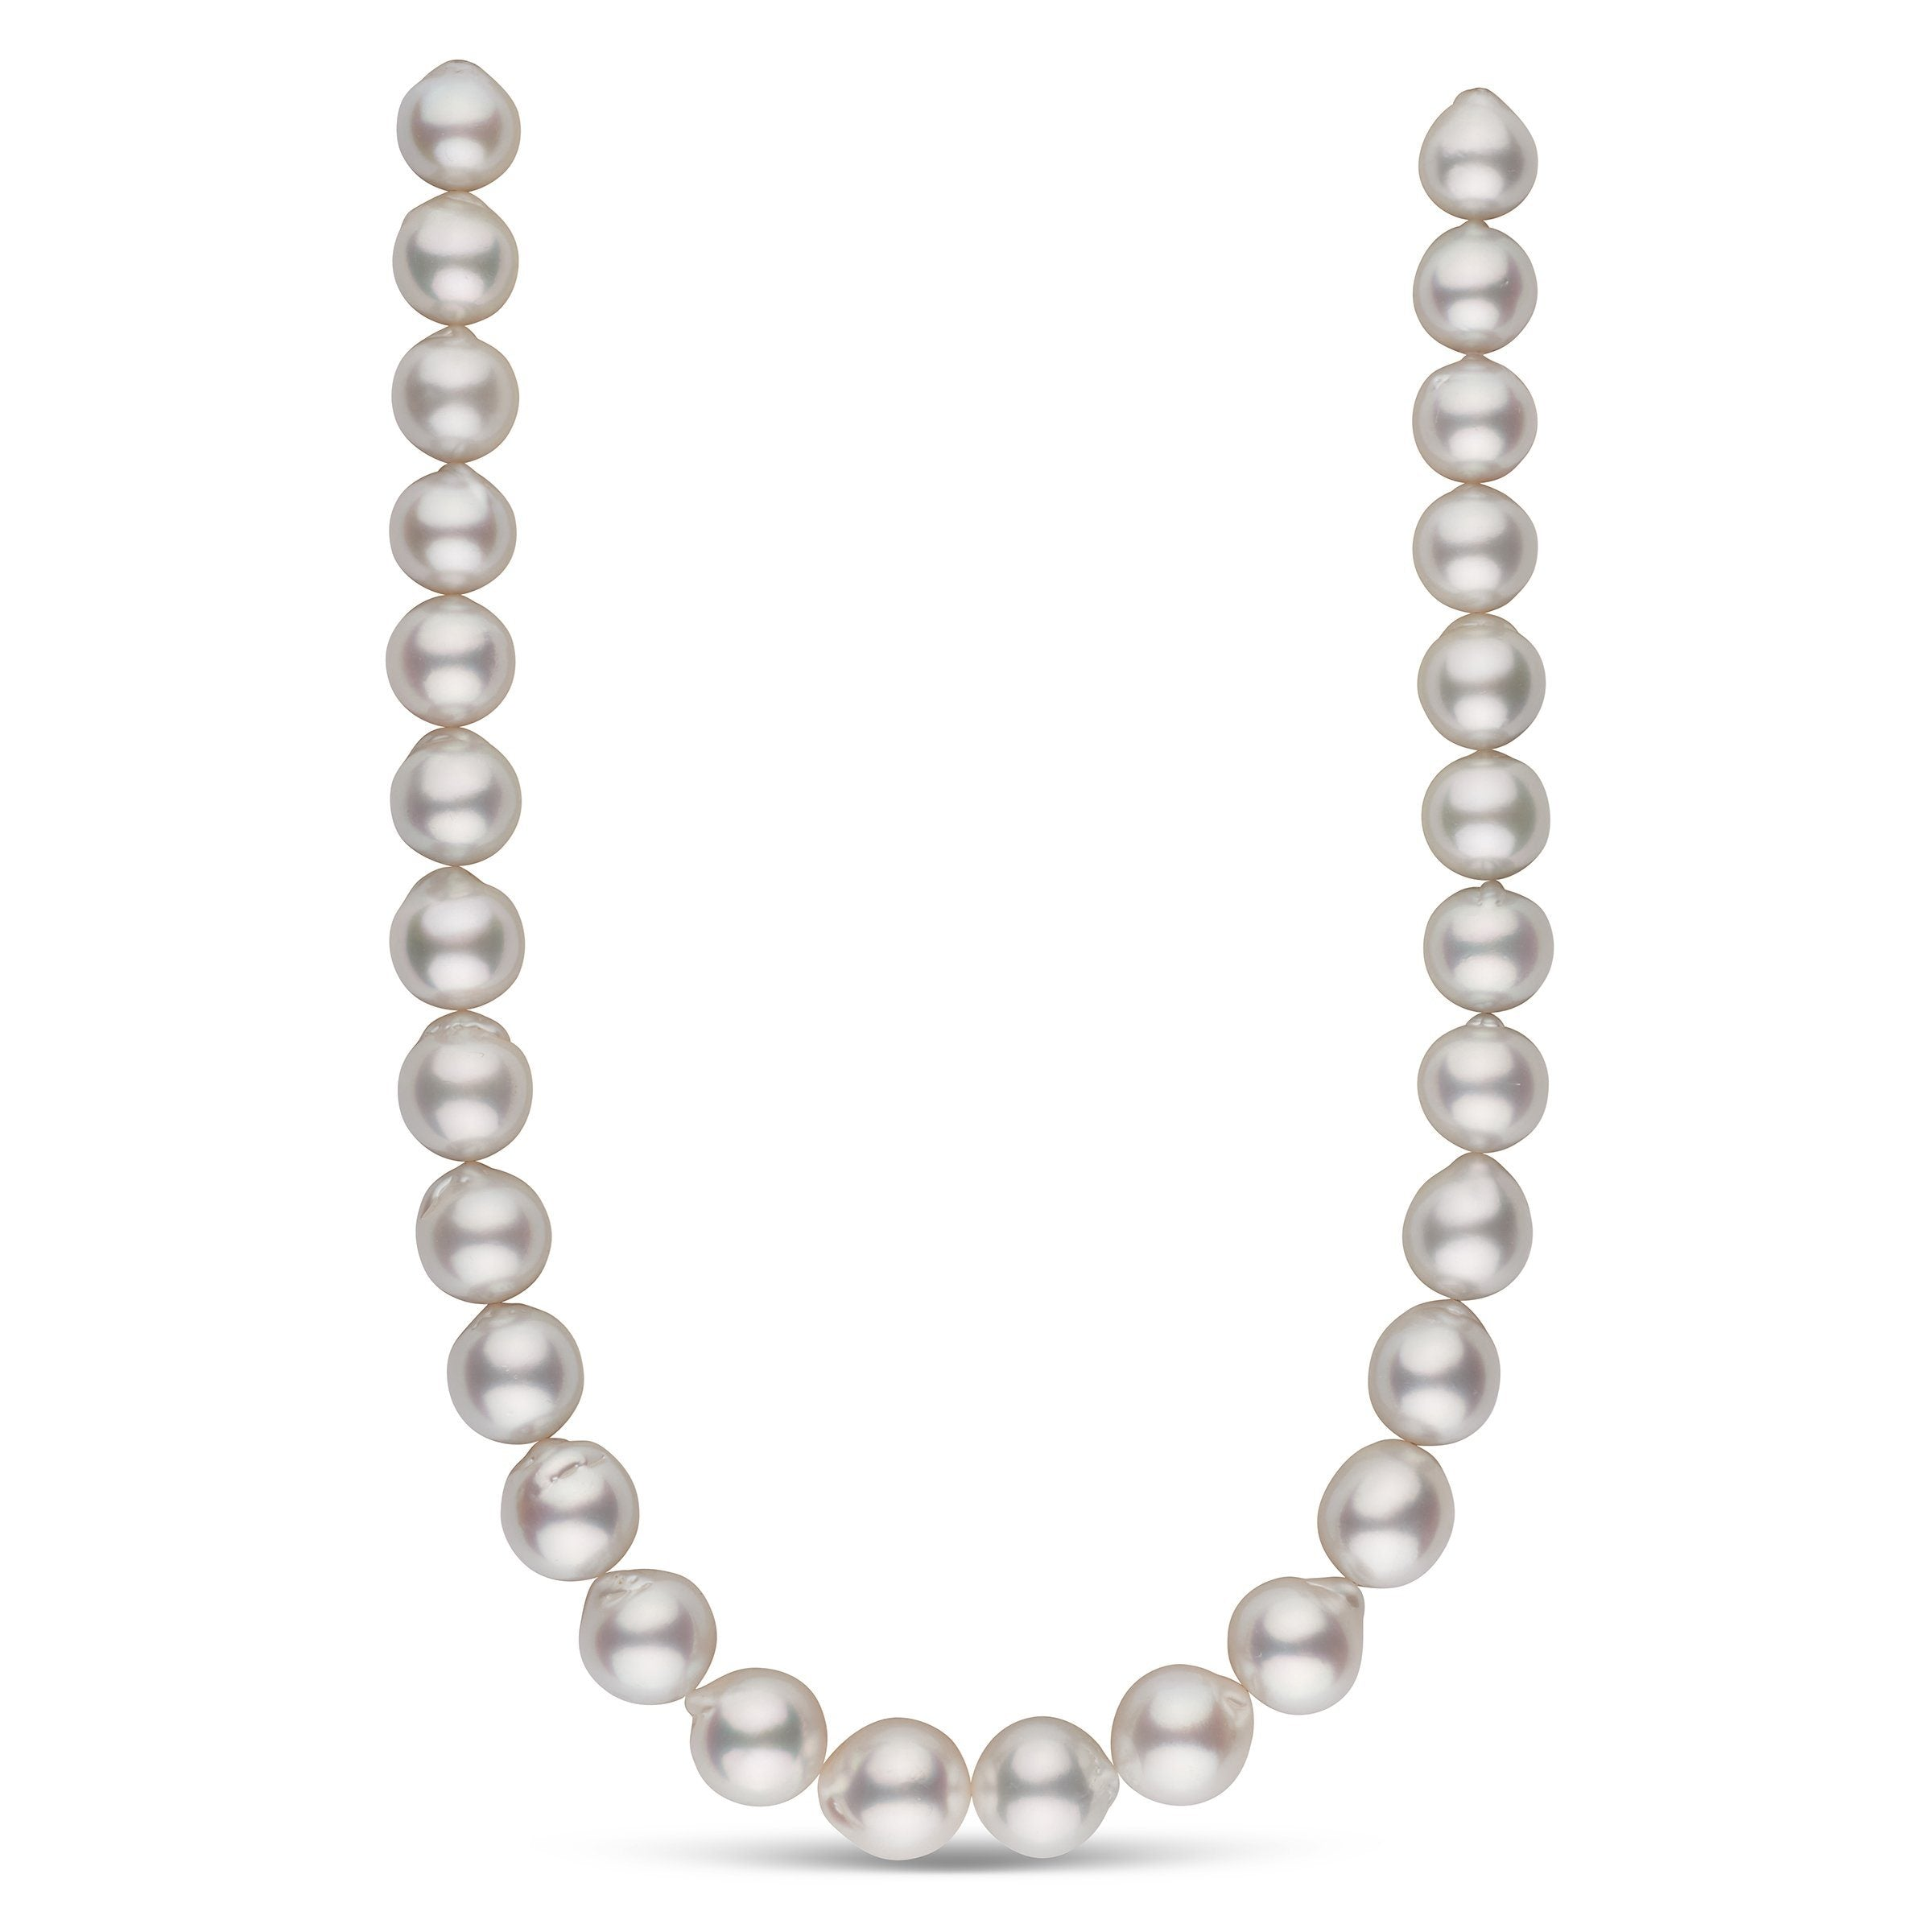 The O Sole Mio White South Sea Pearl Necklace